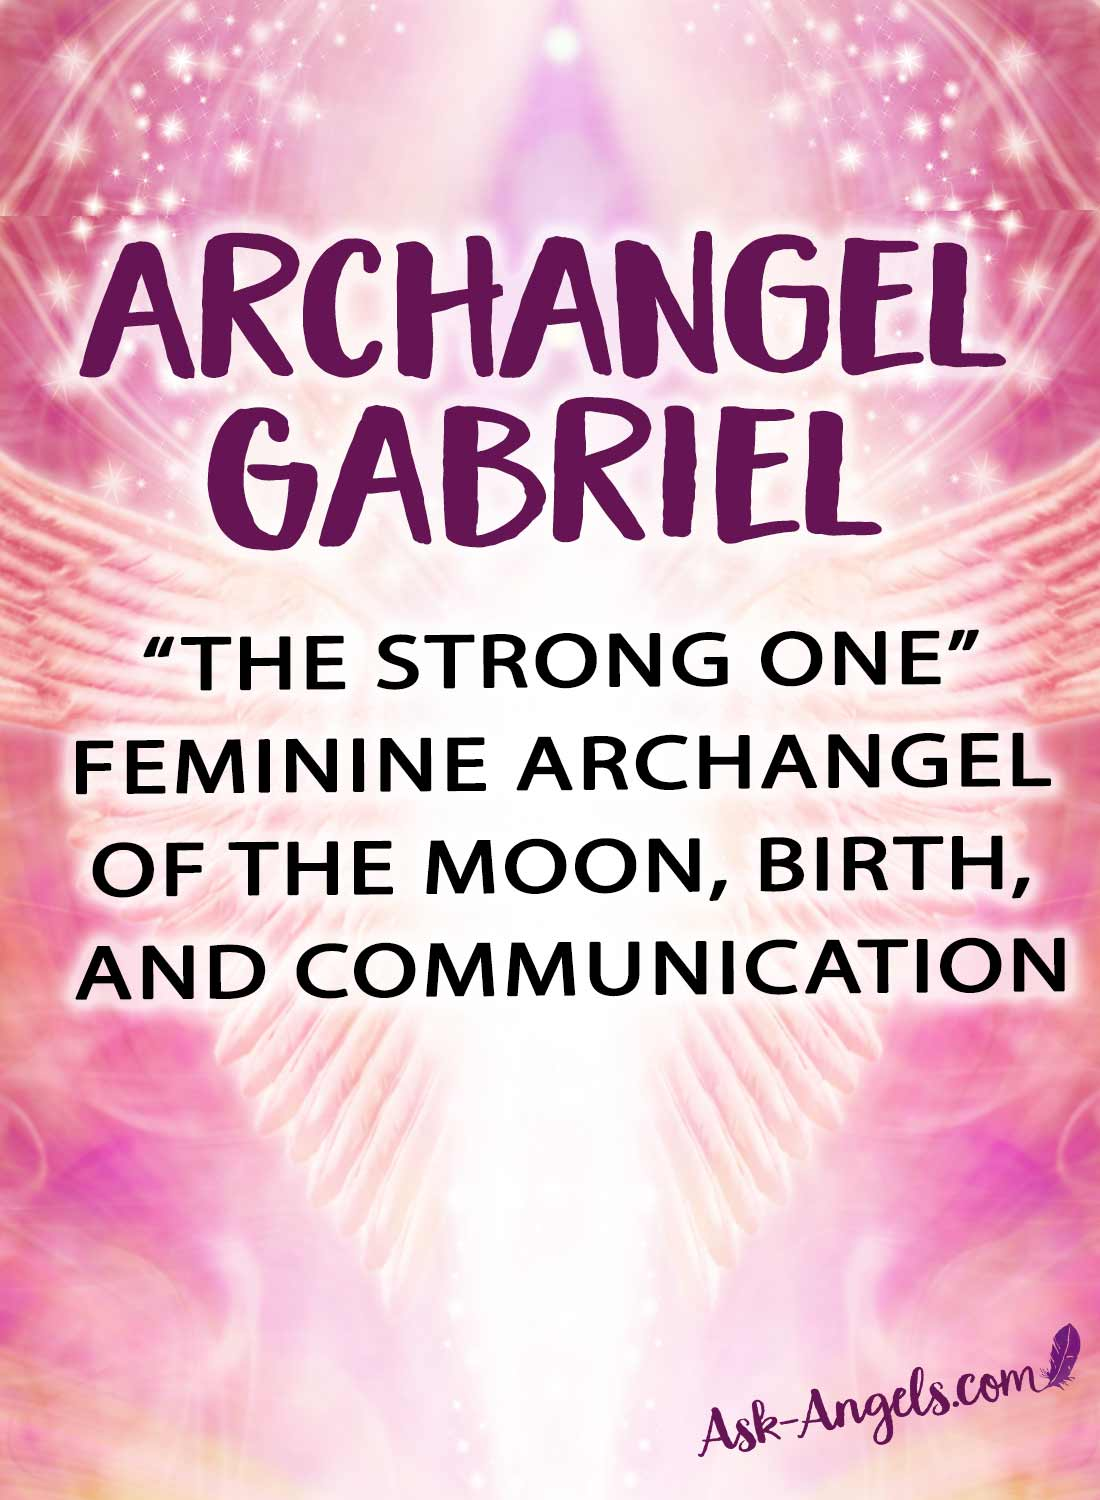 Archangel Gabriel is the feminine archangel of the moon, birth and communication. Learn more!